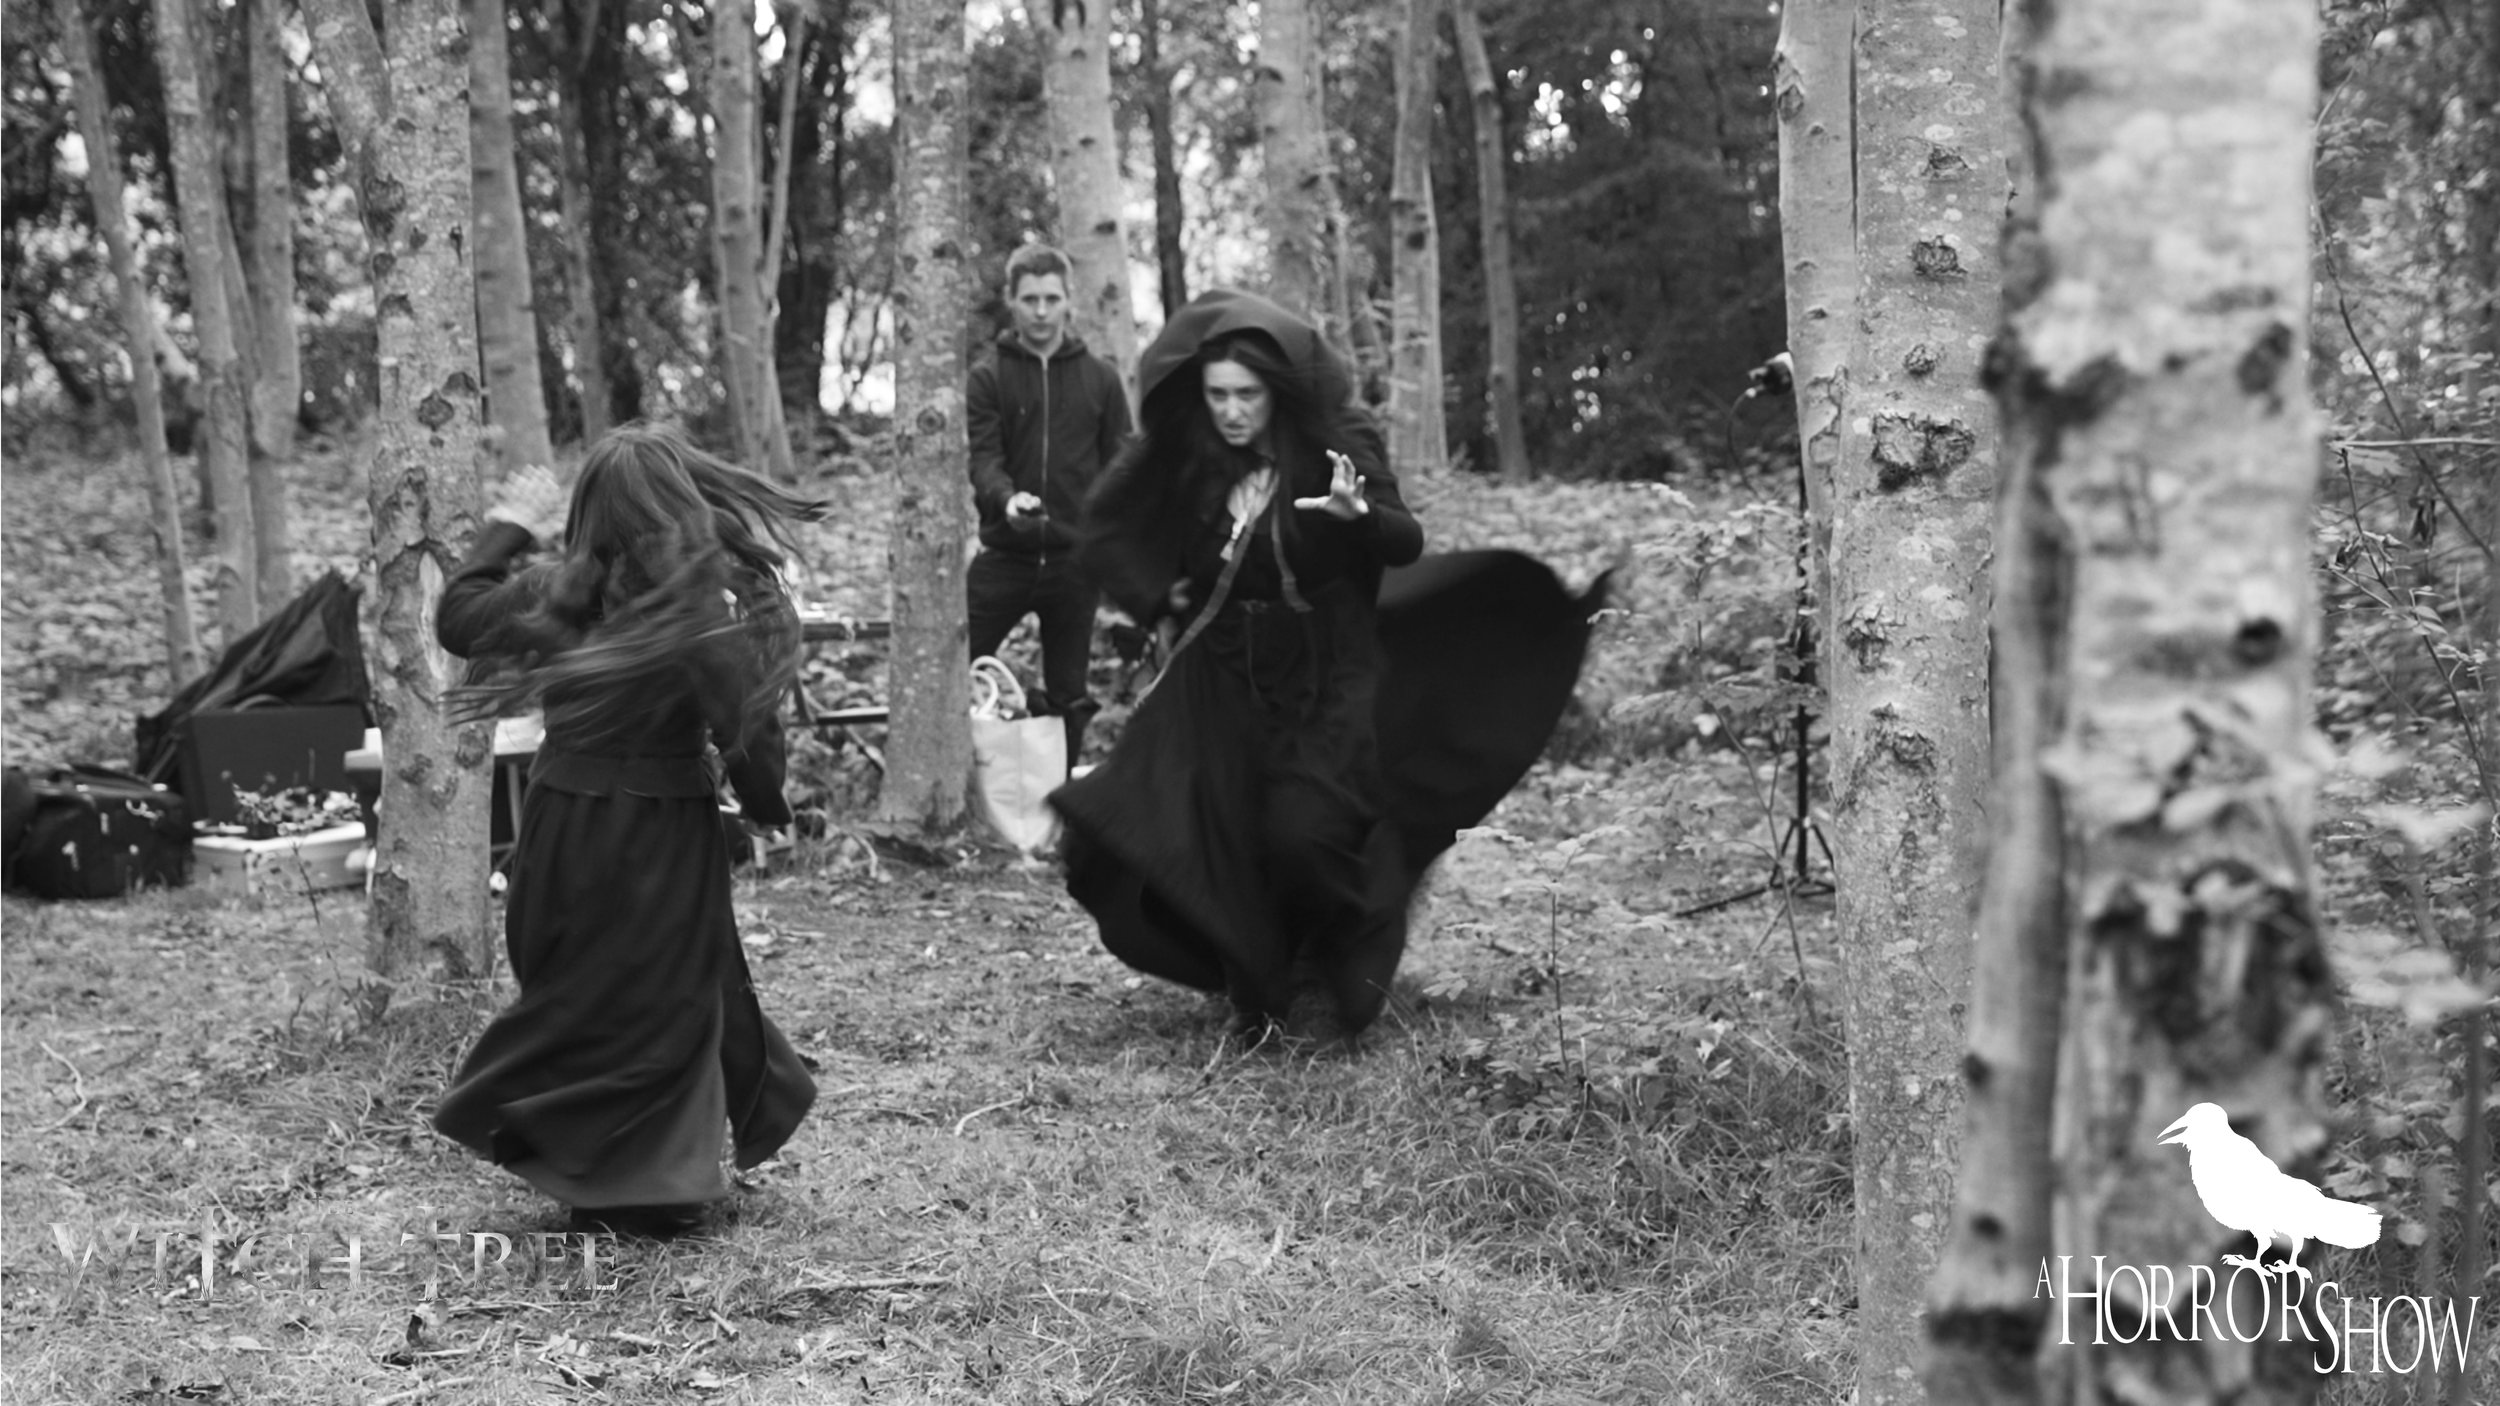 Behind the scenes on the set of The Witch Tree short horror film.